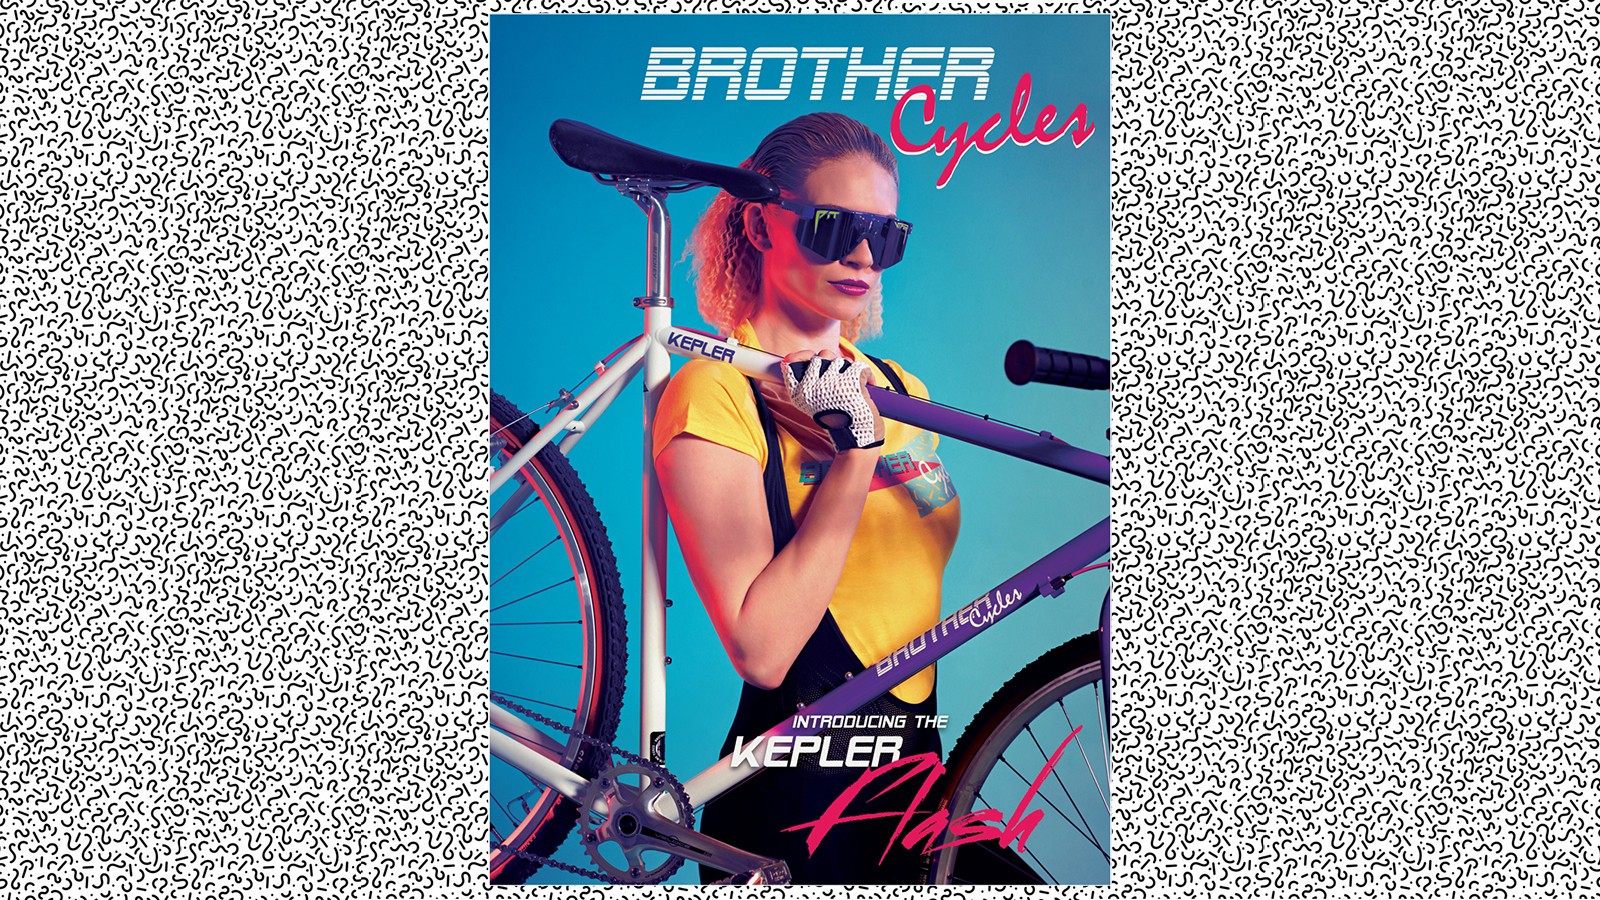 The poster that Brother produced to accompany the new bike is said to hark back to the posters of yesteryear